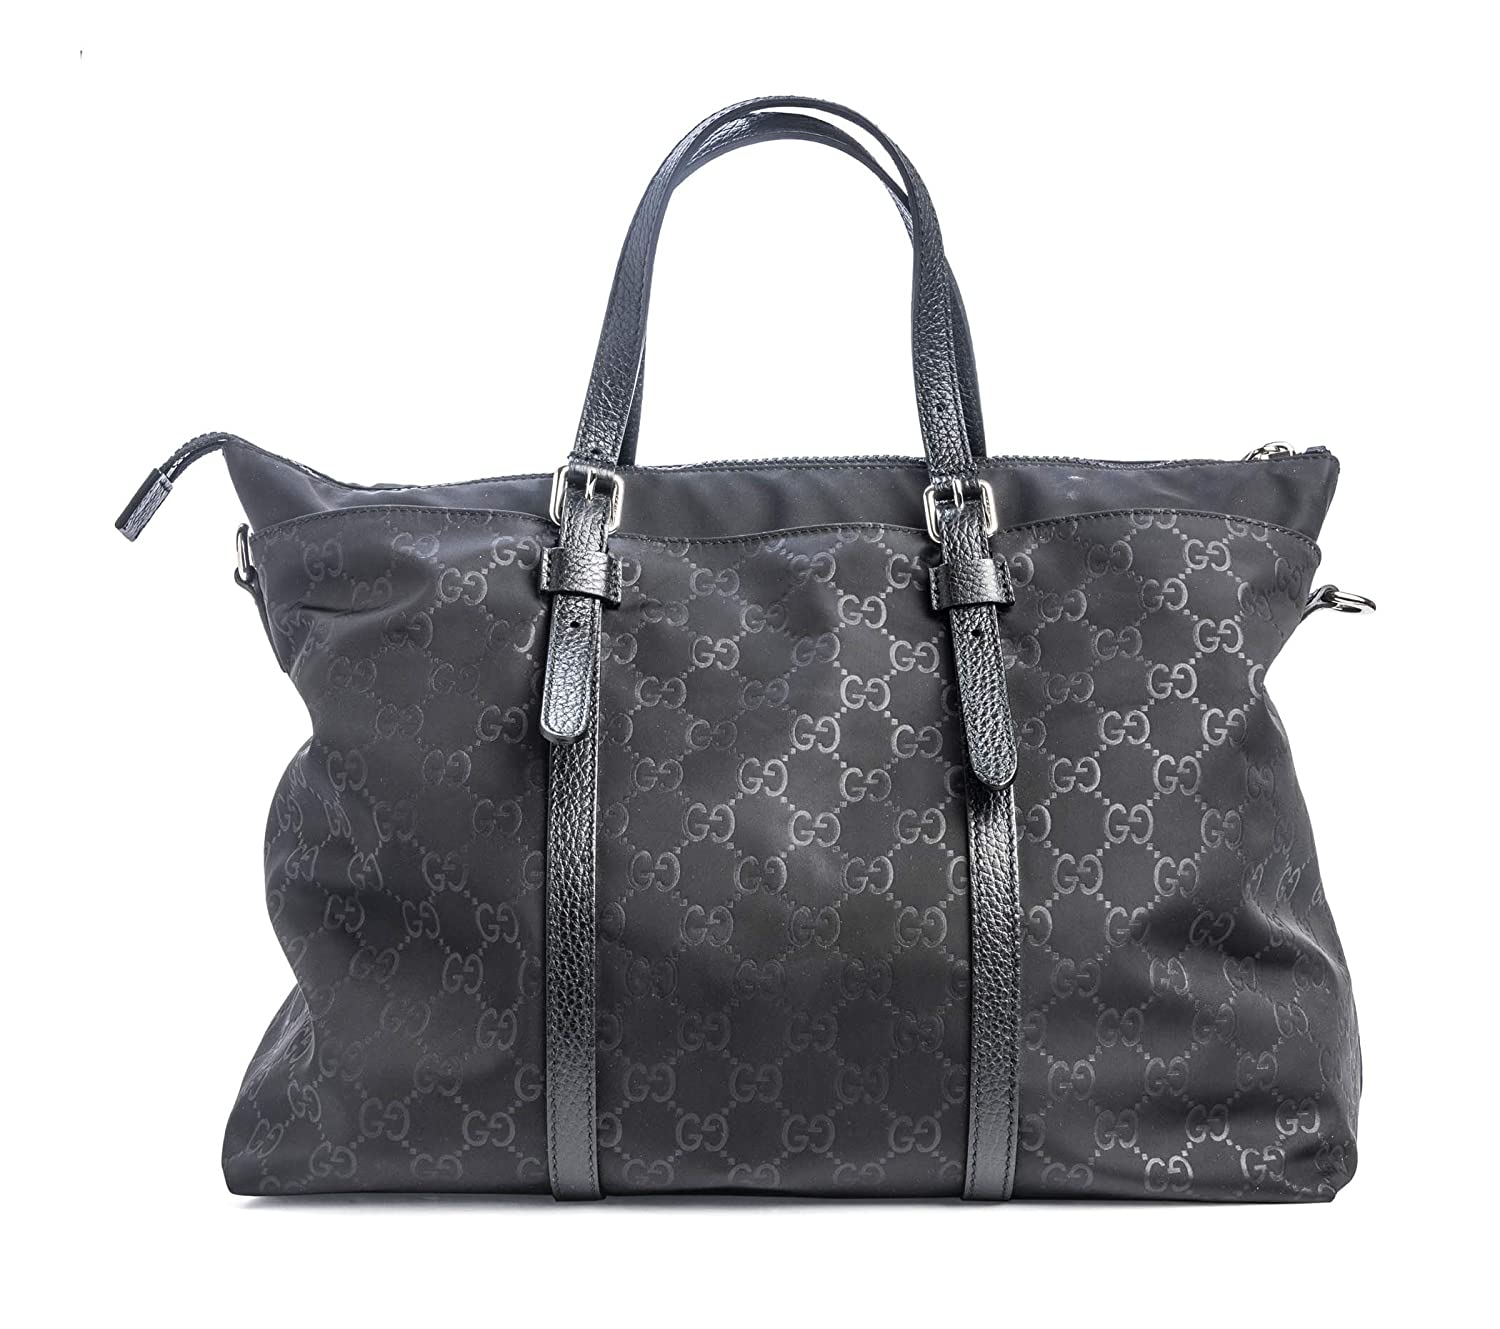 40064aab50a4 Amazon.com: Gucci Authentic Handbag GG Bag Tote Black Nylong Large Leather  Strap Fabric New: Baby